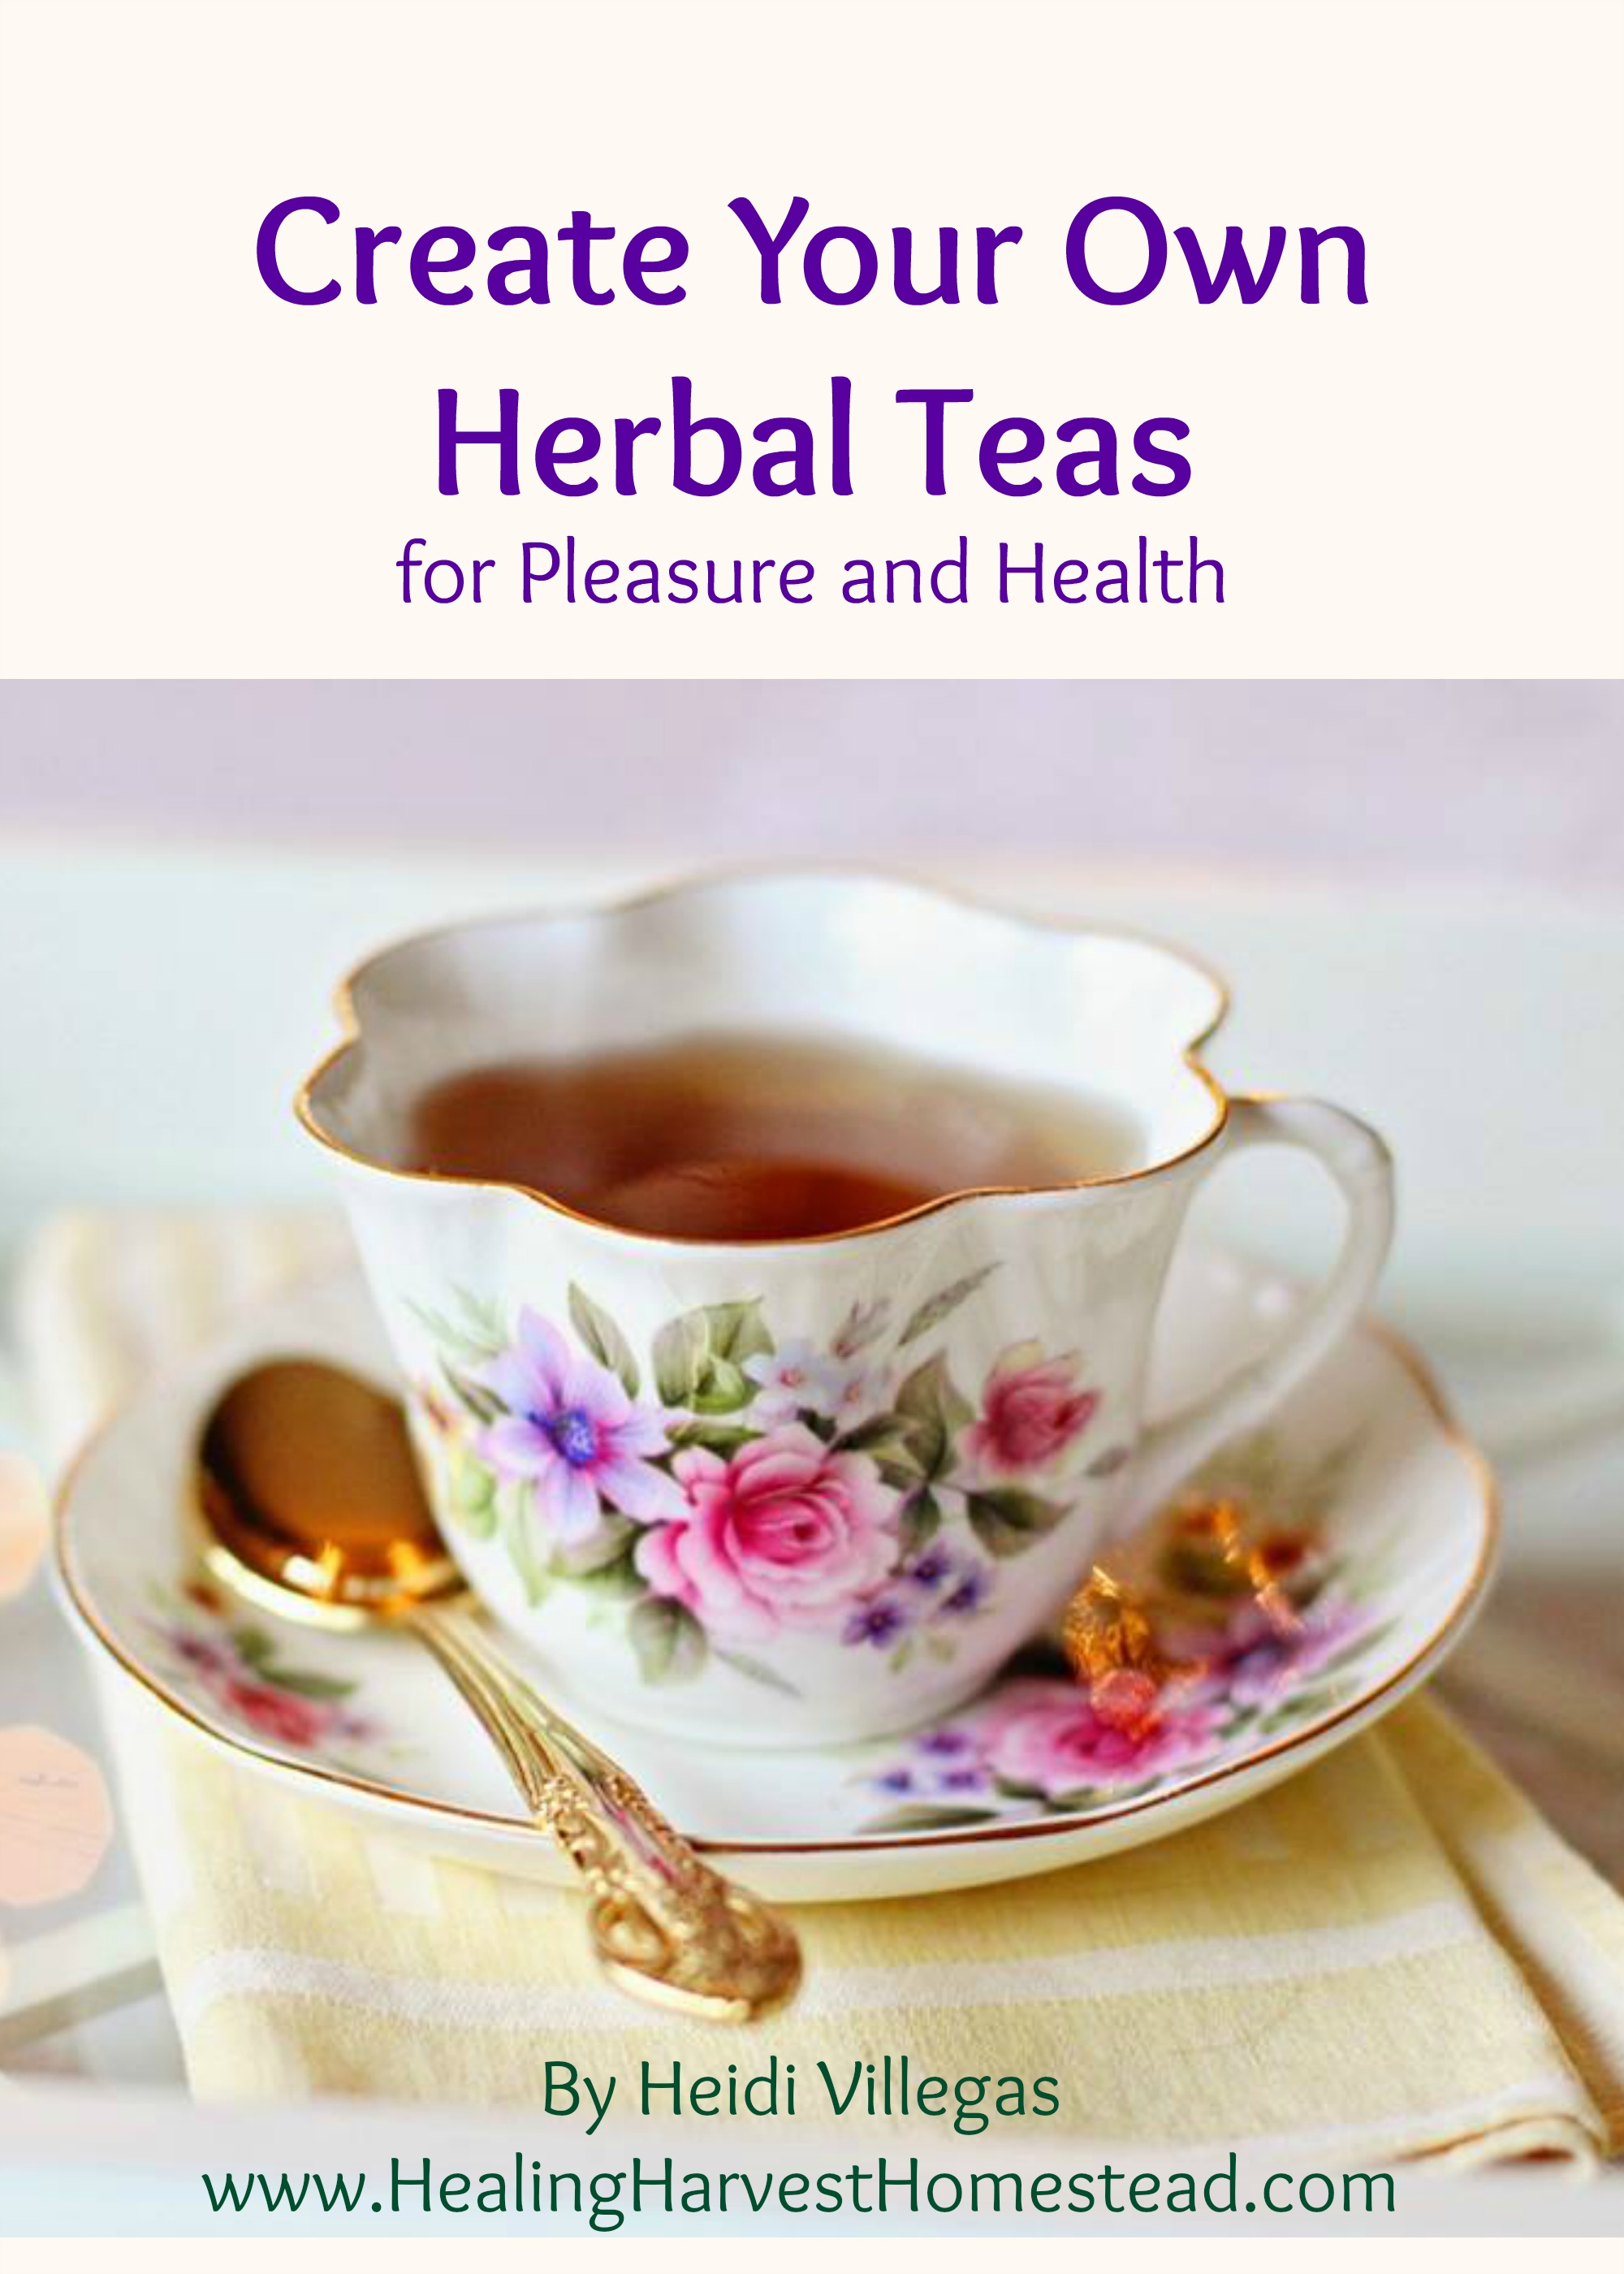 Click on the picture above to  learn more about how to create your very own personalized herbal teas ...either for taste or pleasure! This eBook is clear and concise, and contains excellent information on the basics you need to know to create and formulate your own tea blends!